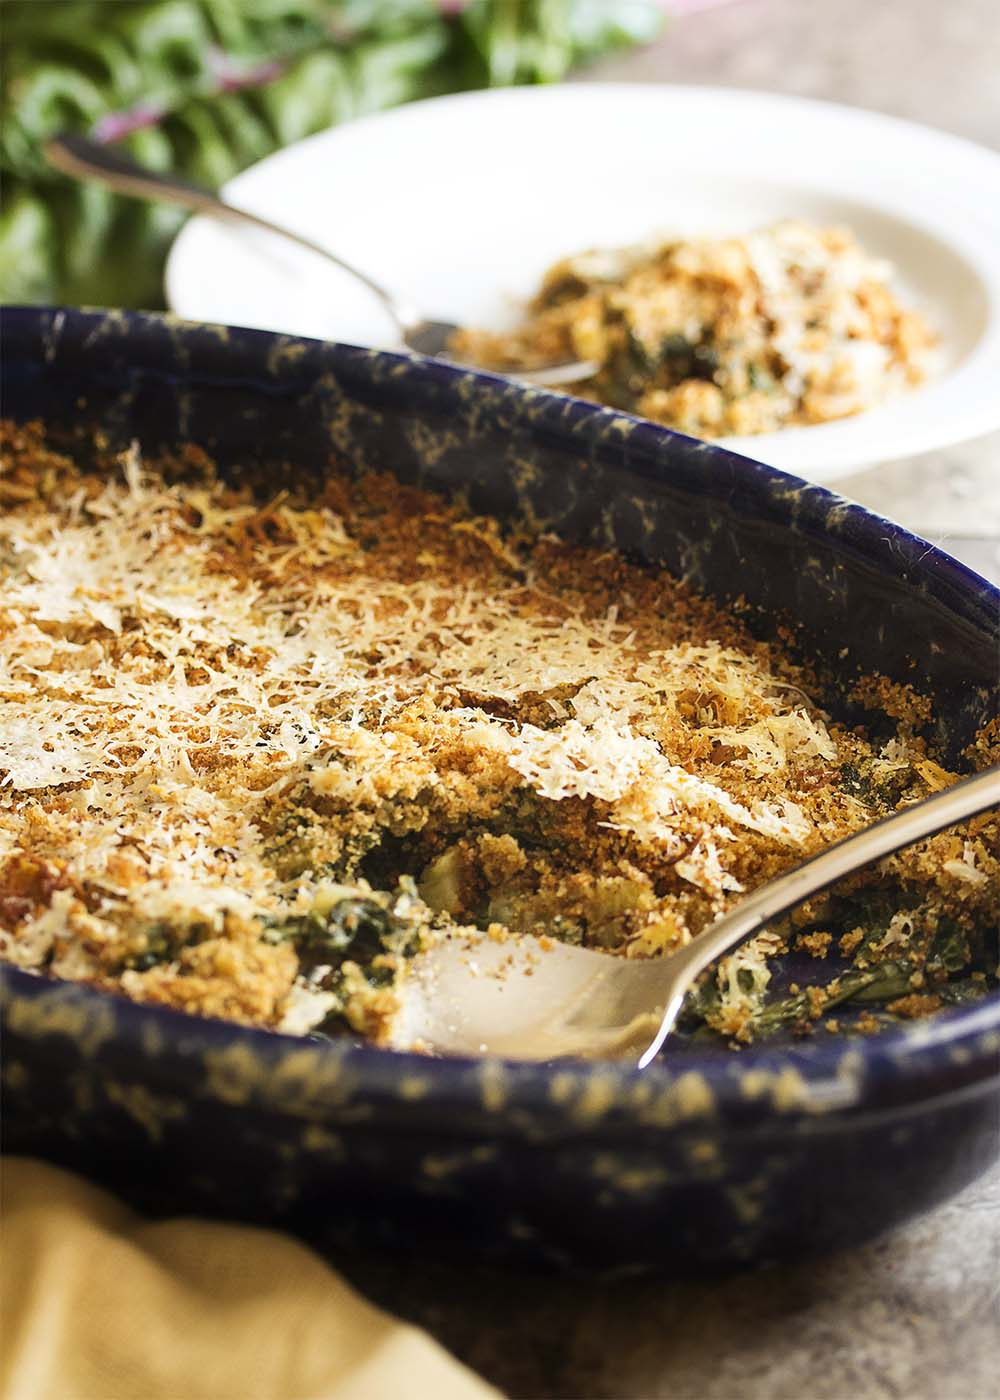 Easy Swiss Chard Gratin - This easy chard gratin is all about the greens as they are cooked in milk and then topped with breadcrumbs and a handful of parmesan. This a great gratin for when you have more greens than you know what to do with - chard, kale, turnip greens, beet greens, spinach. Try a mix of different greens! | justalittlebitofbacon.com